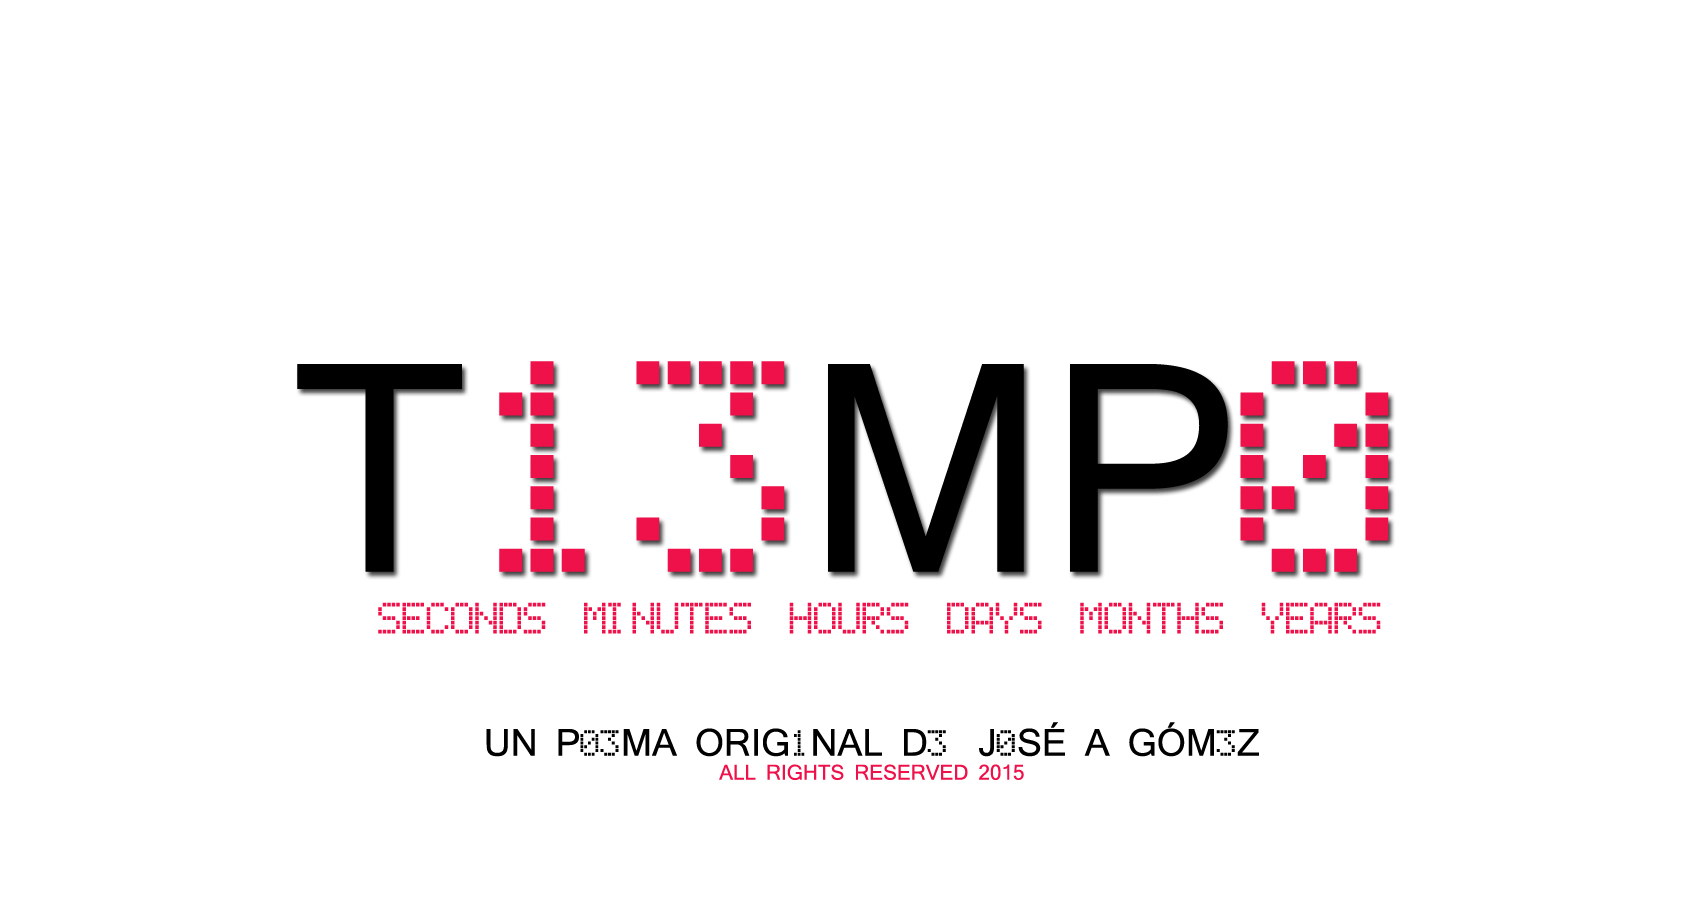 spillwords.com Tiempo by Jose A Gomez